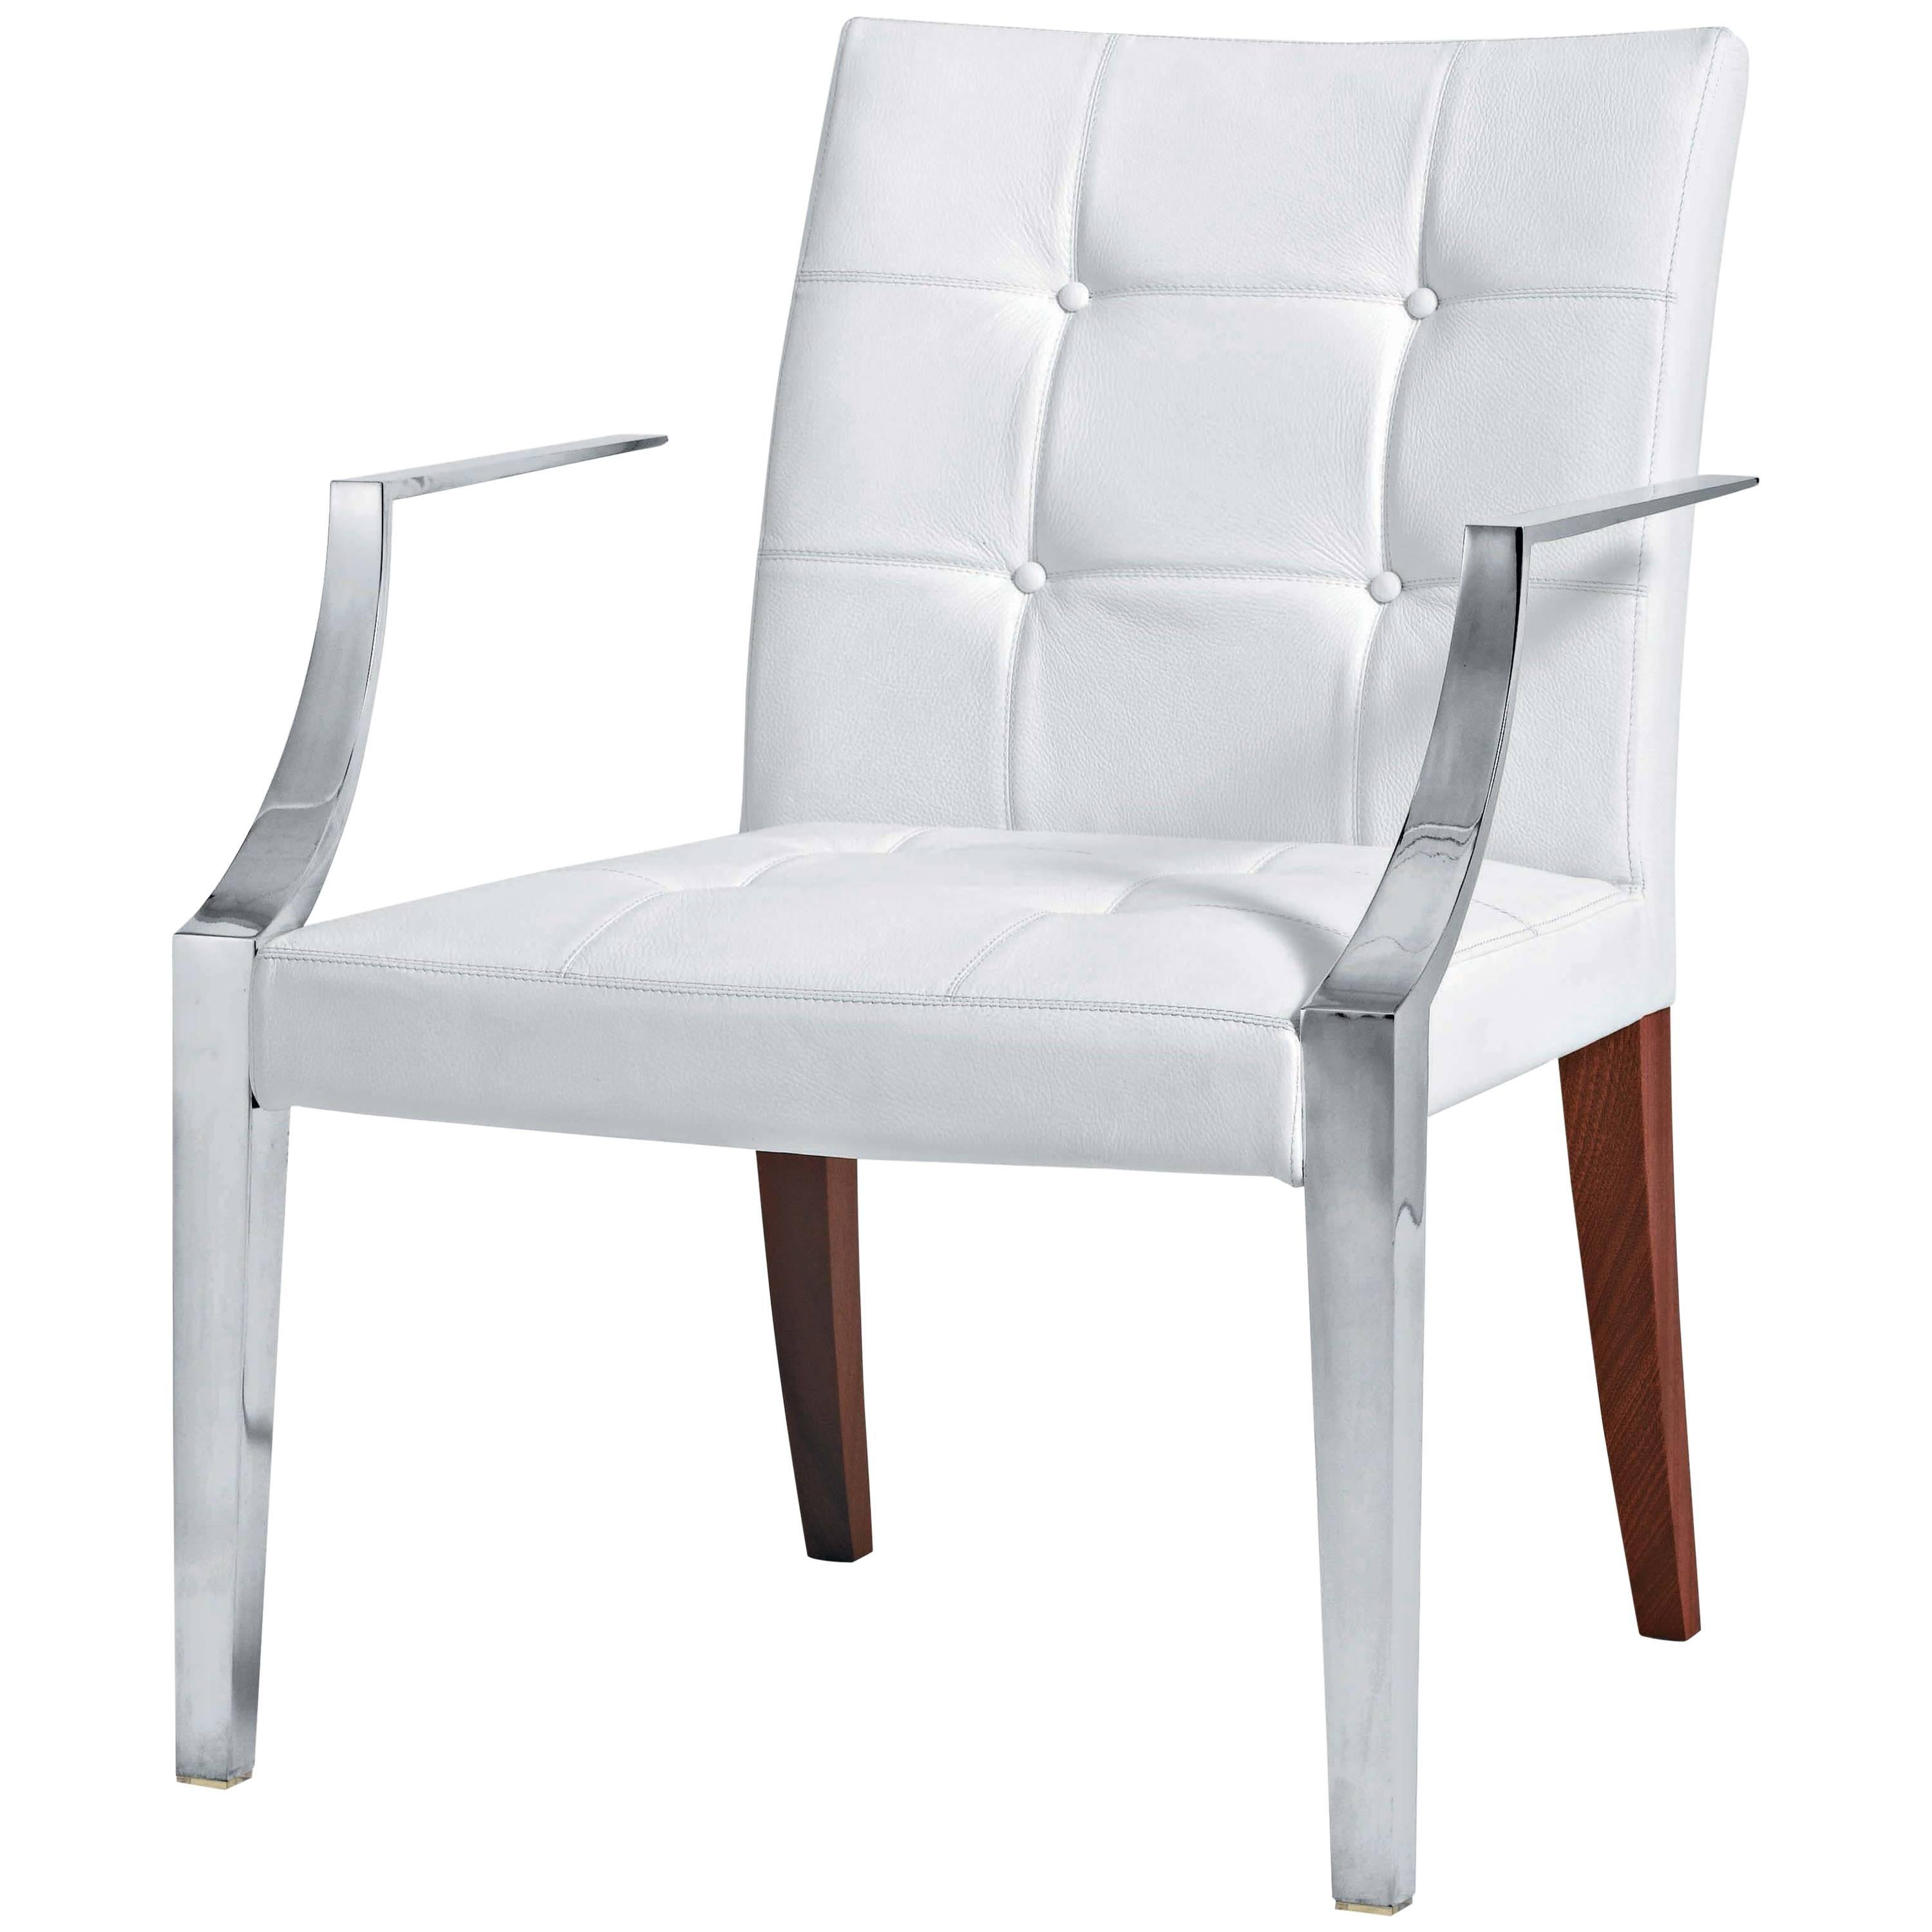 Armchair Monseigneur in White Leather Designed by Philippe Starck for Driade